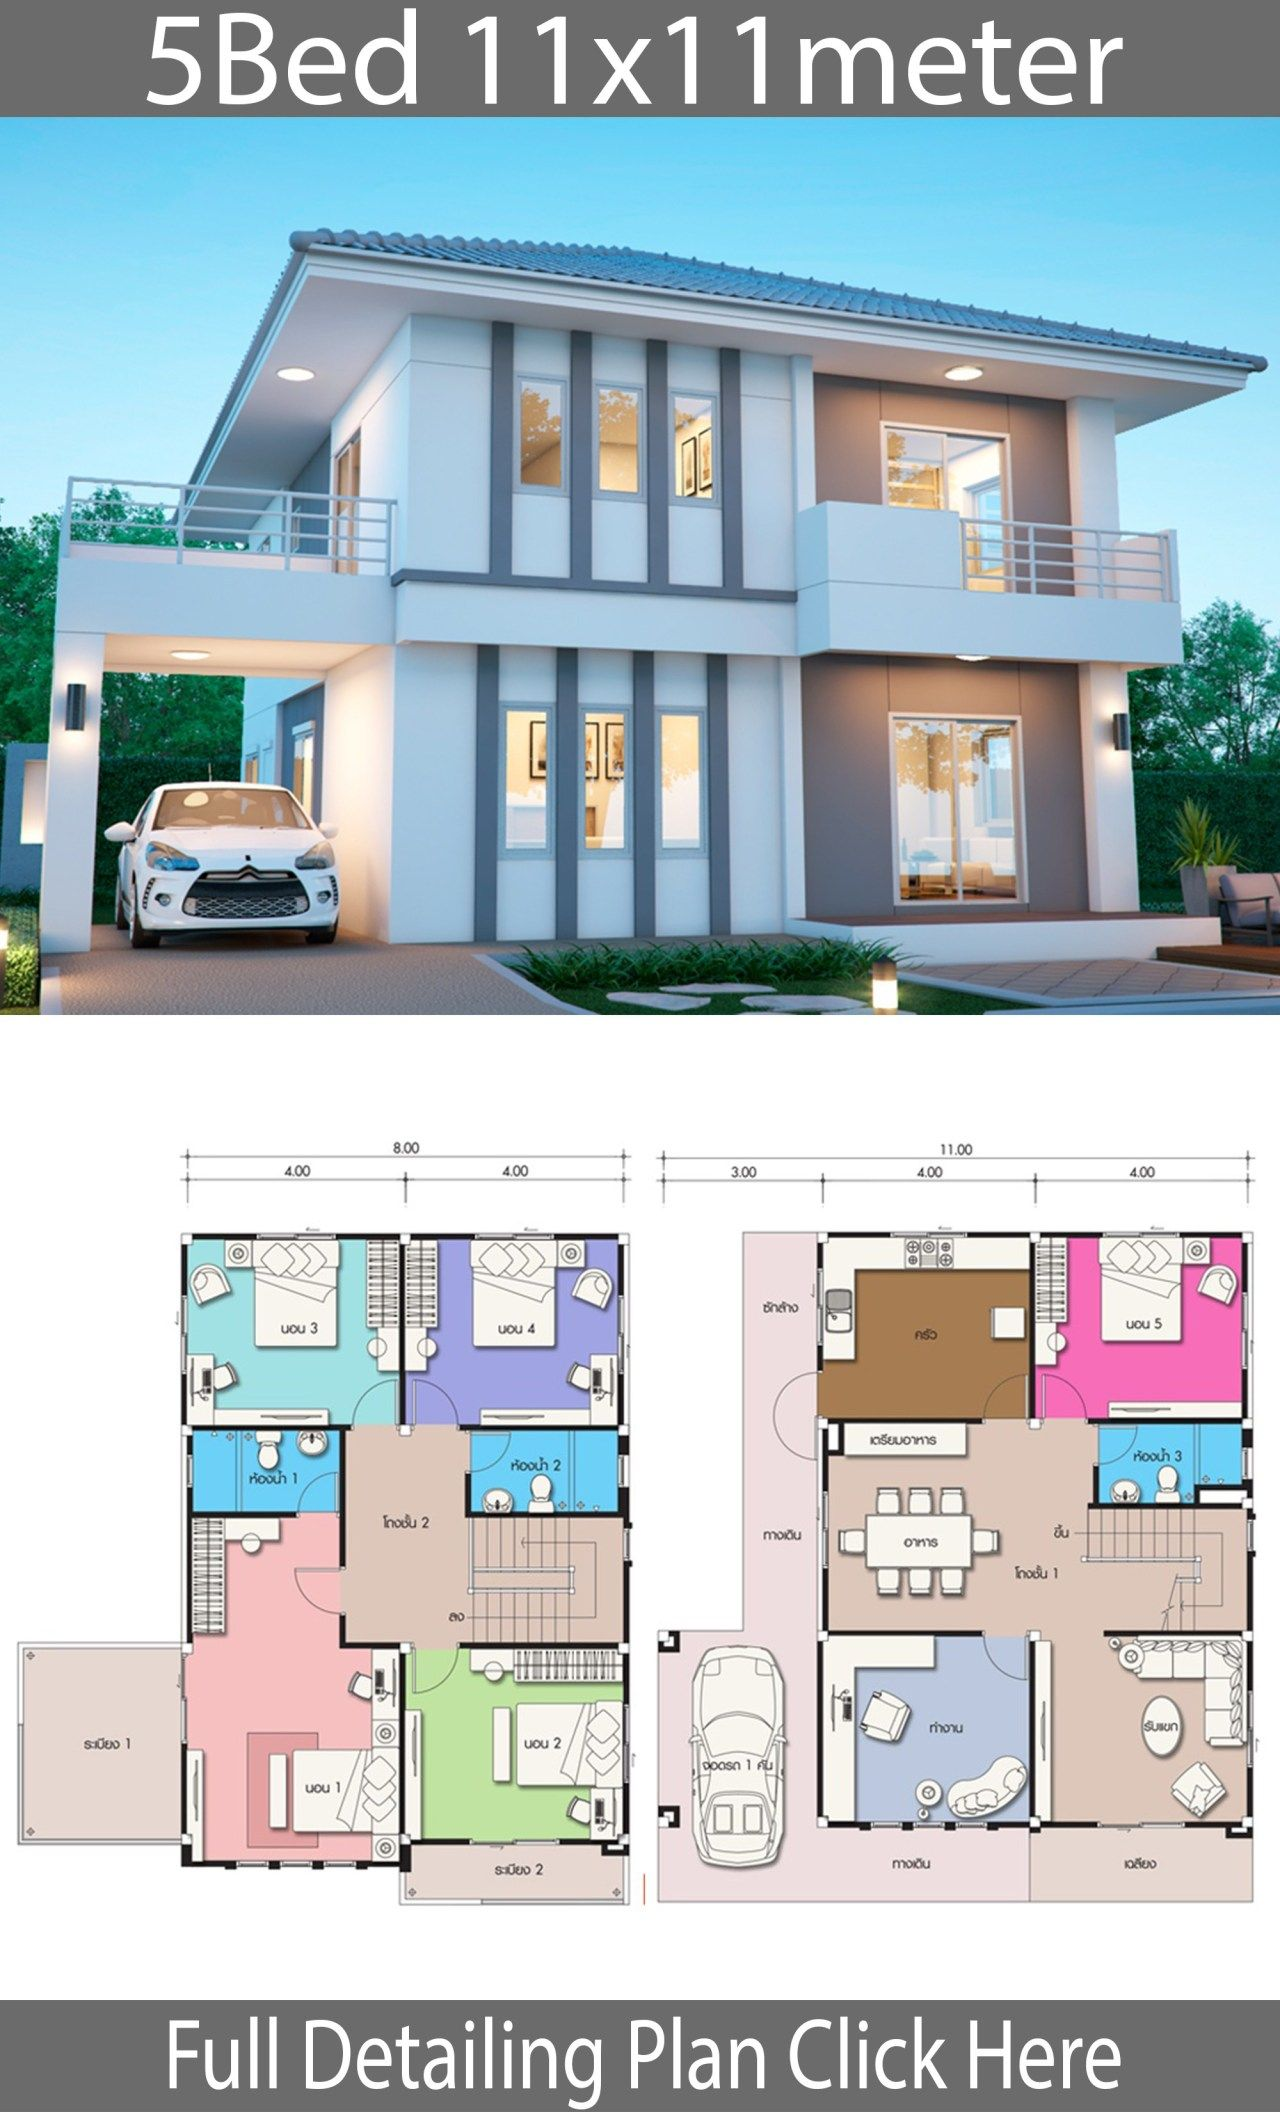 House Design Plan 11x11m With 5 Bedrooms Home Ideas Sims House Plans Small Modern House Plans House Construction Plan